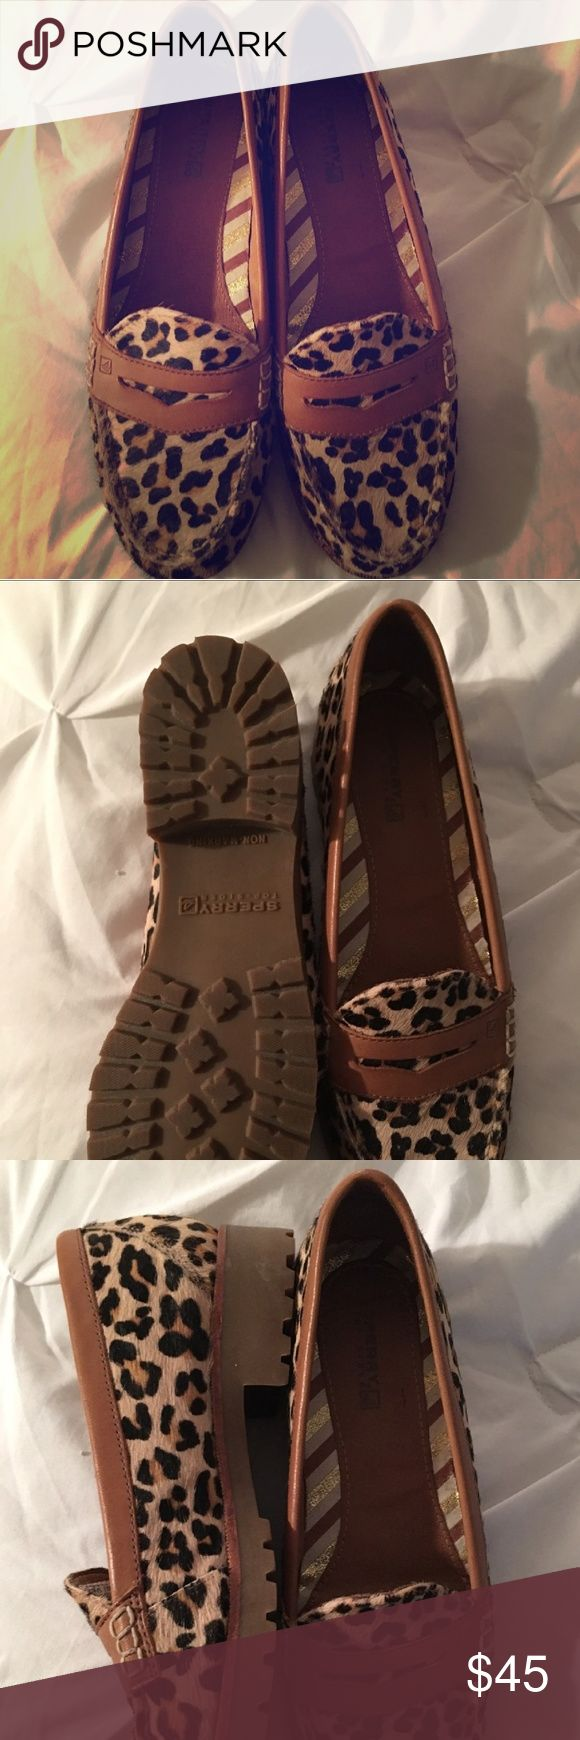 Cheetah Print Sperry Loafers These Sperry Loafers are comfy and chic! These are gently used.  Size is 7.5. Make me an offer! Sperry Shoes Flats & Loafers